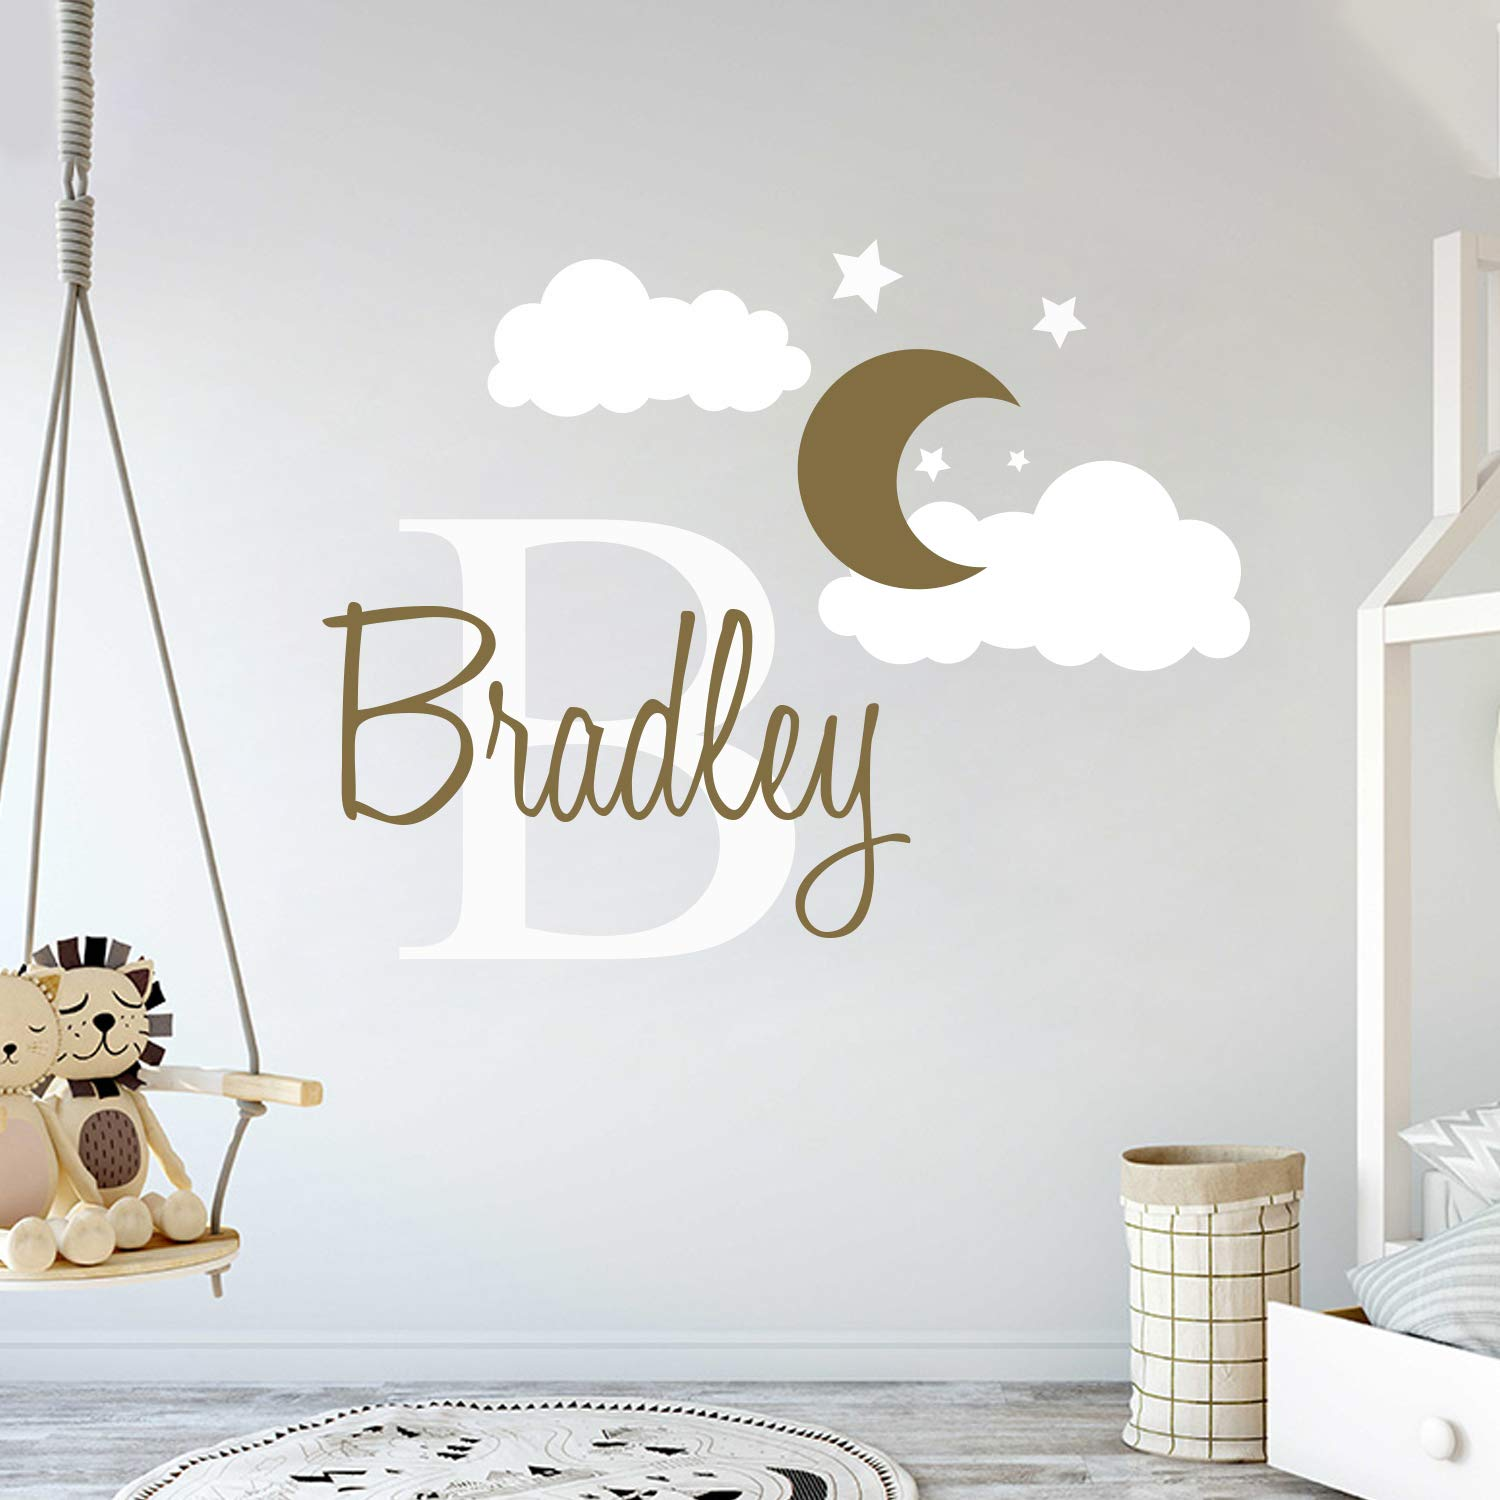 Custom Name & Initial Moon Clouds Stars - Baby Boy - Nursery Wall Decal for Baby Room Decorations - Mural Wall Decal Sticker for Home Children's Bedroom (MM109) (Wide 42'' x 32'' Height) by e-Graphic Design Inc